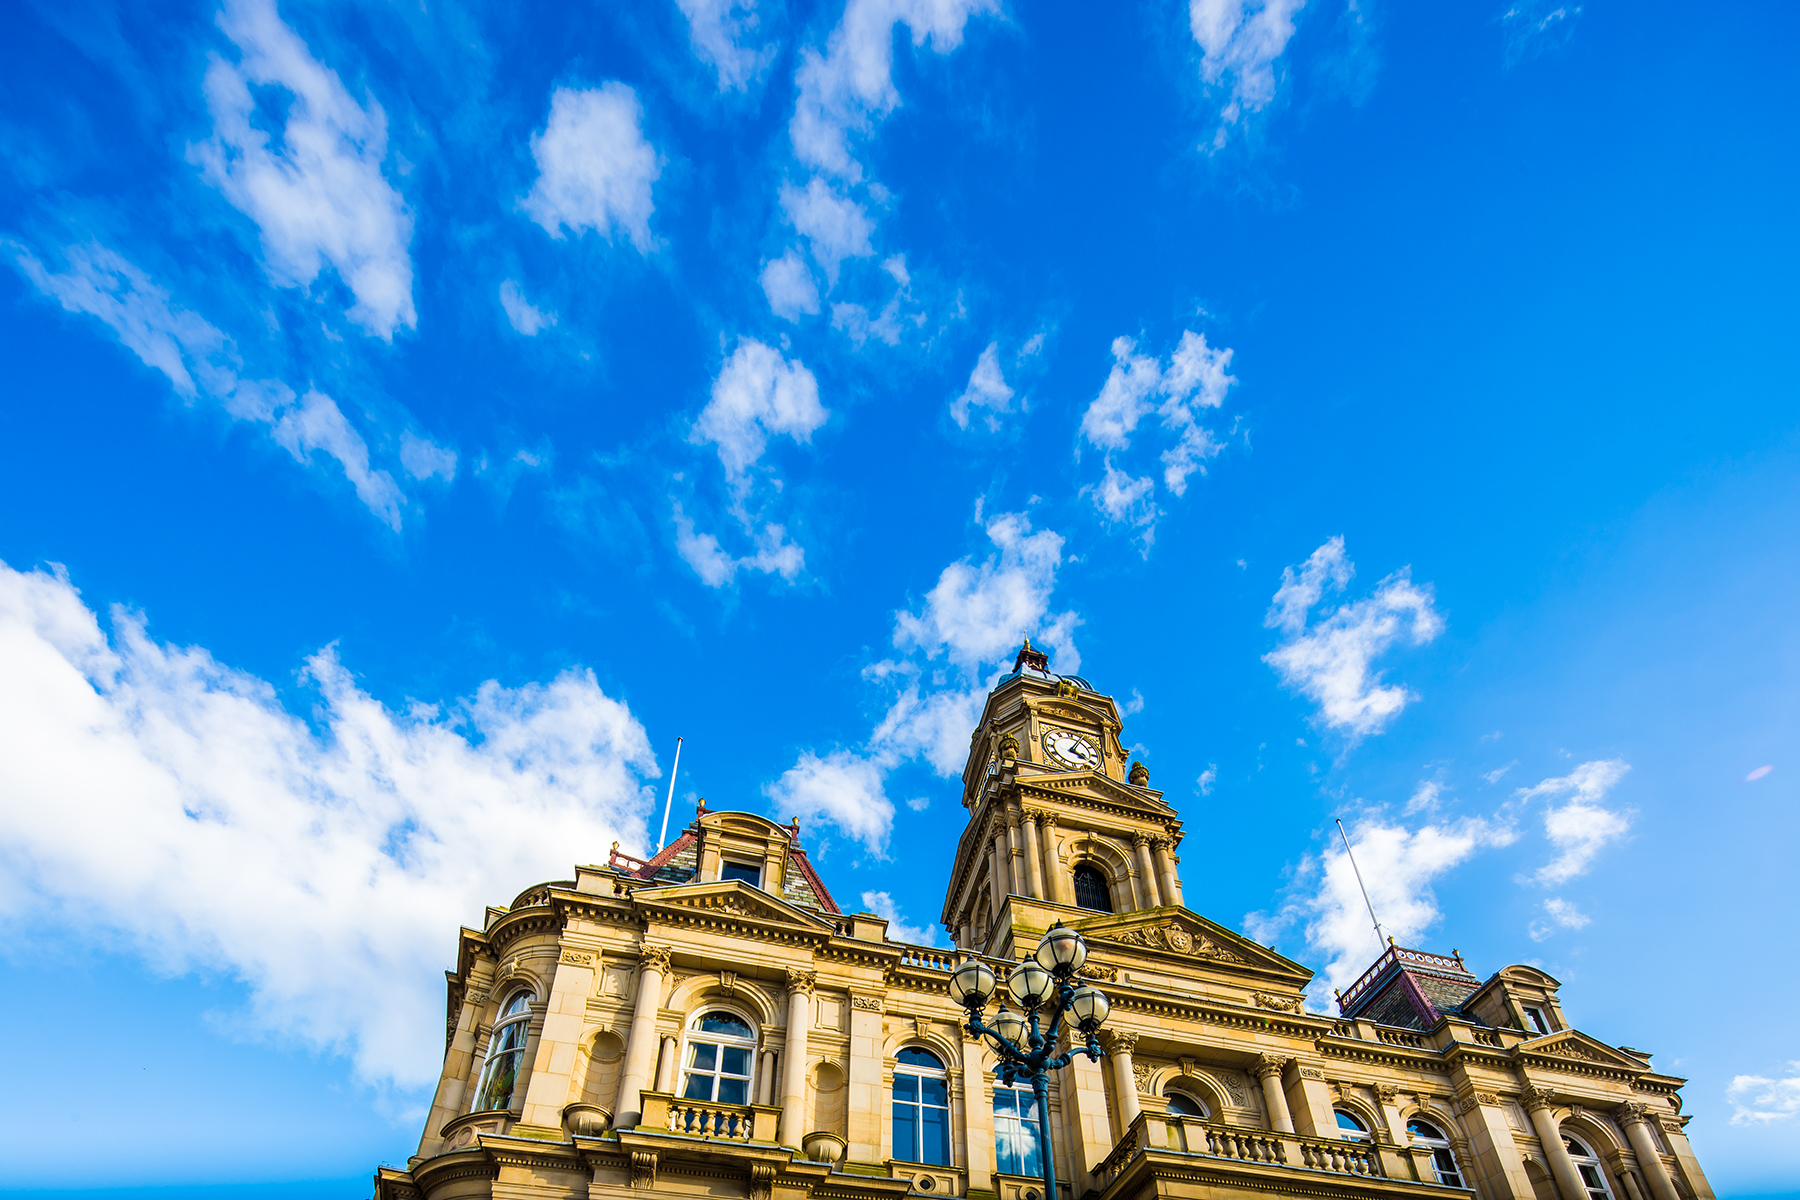 kirklees, huddersfield, dewsbury, made.com, west yorkshire, council, local council, yorkshire, the north, exterior photography, architectural photography, shop photography